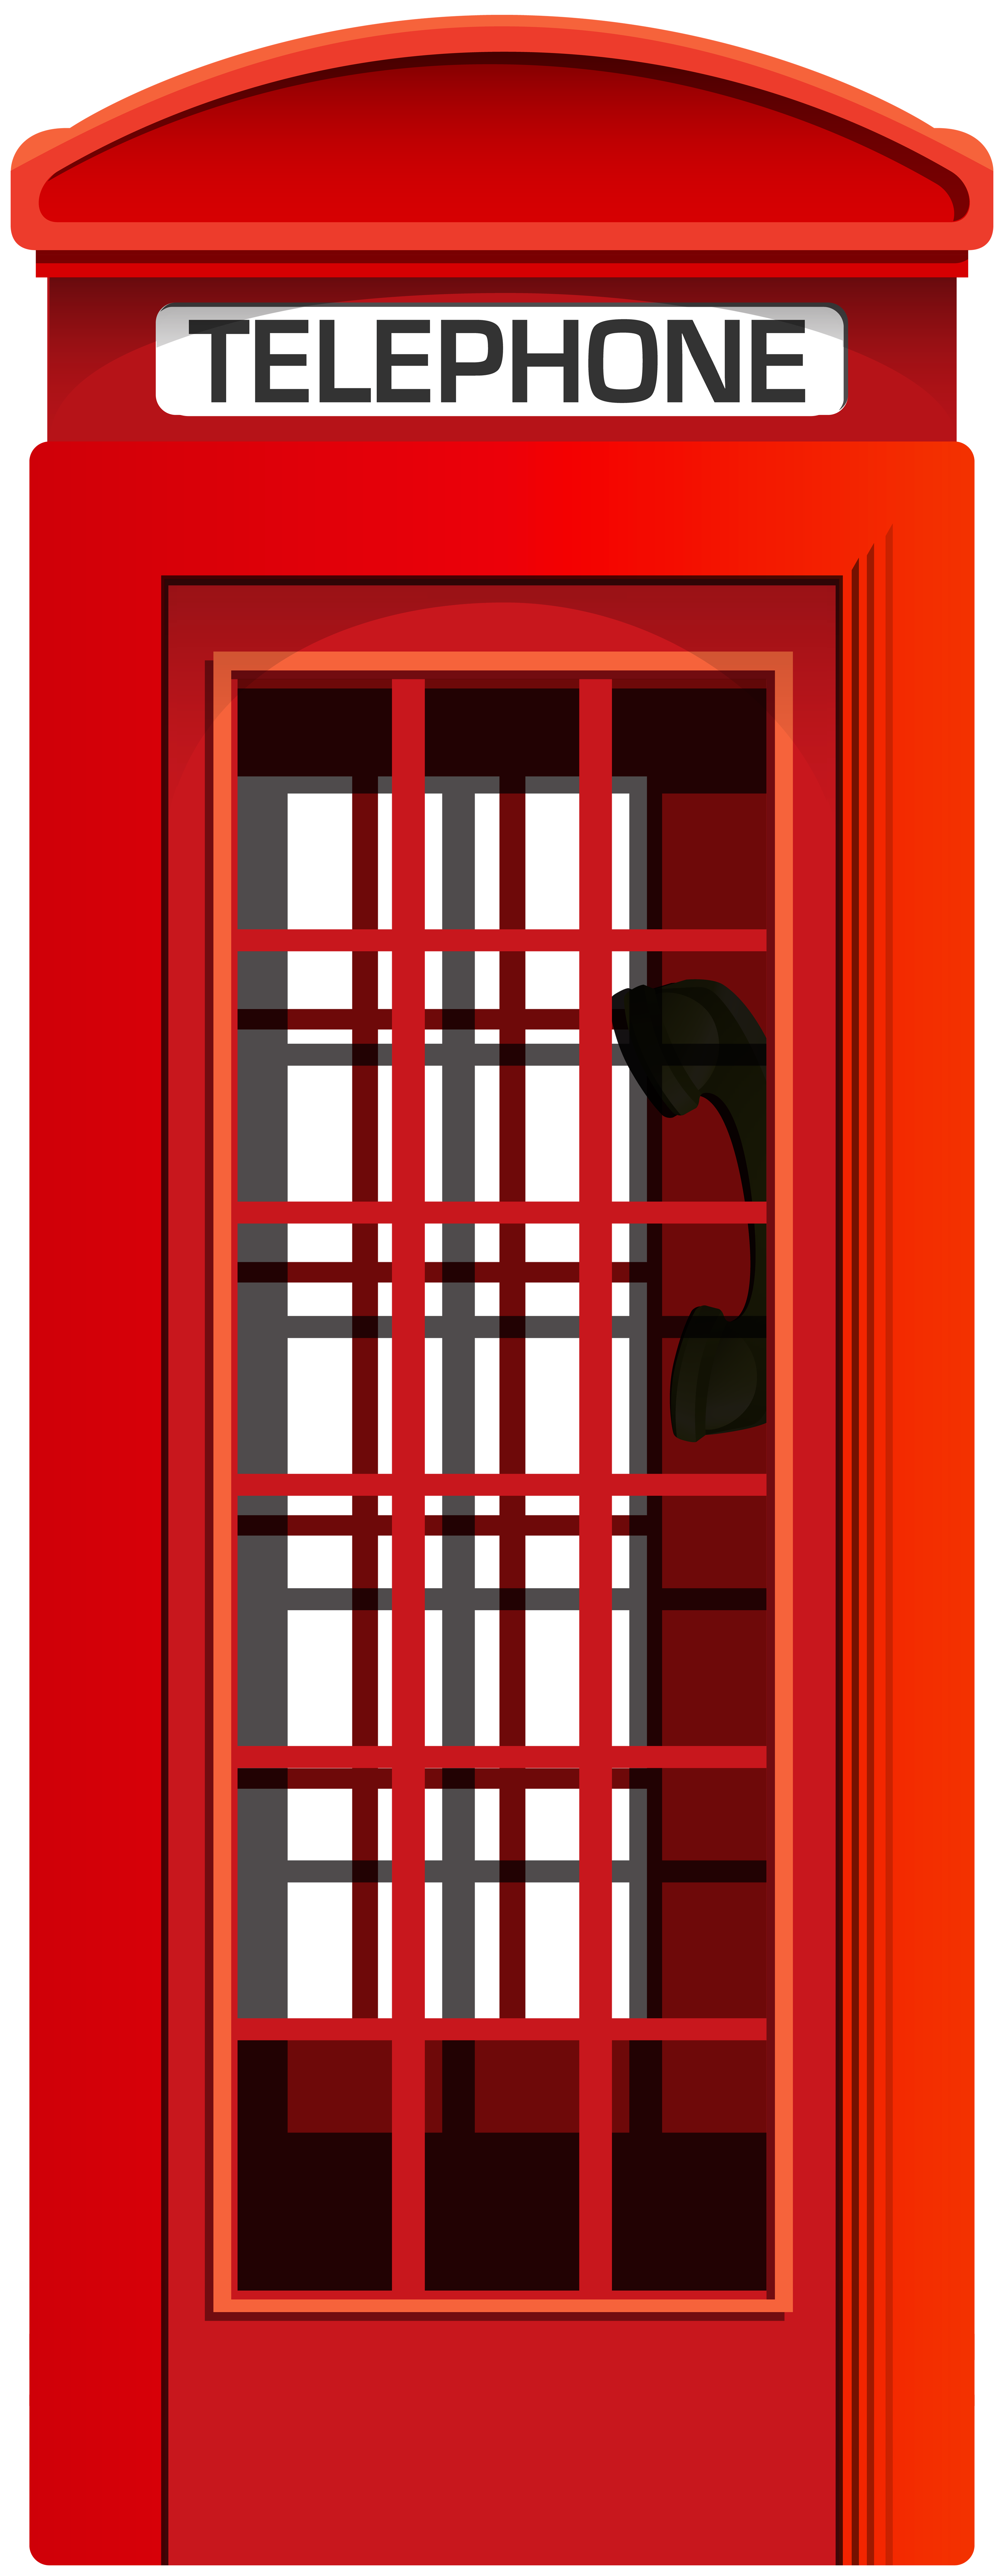 Telephone clipart red telephone. Booth png clip art